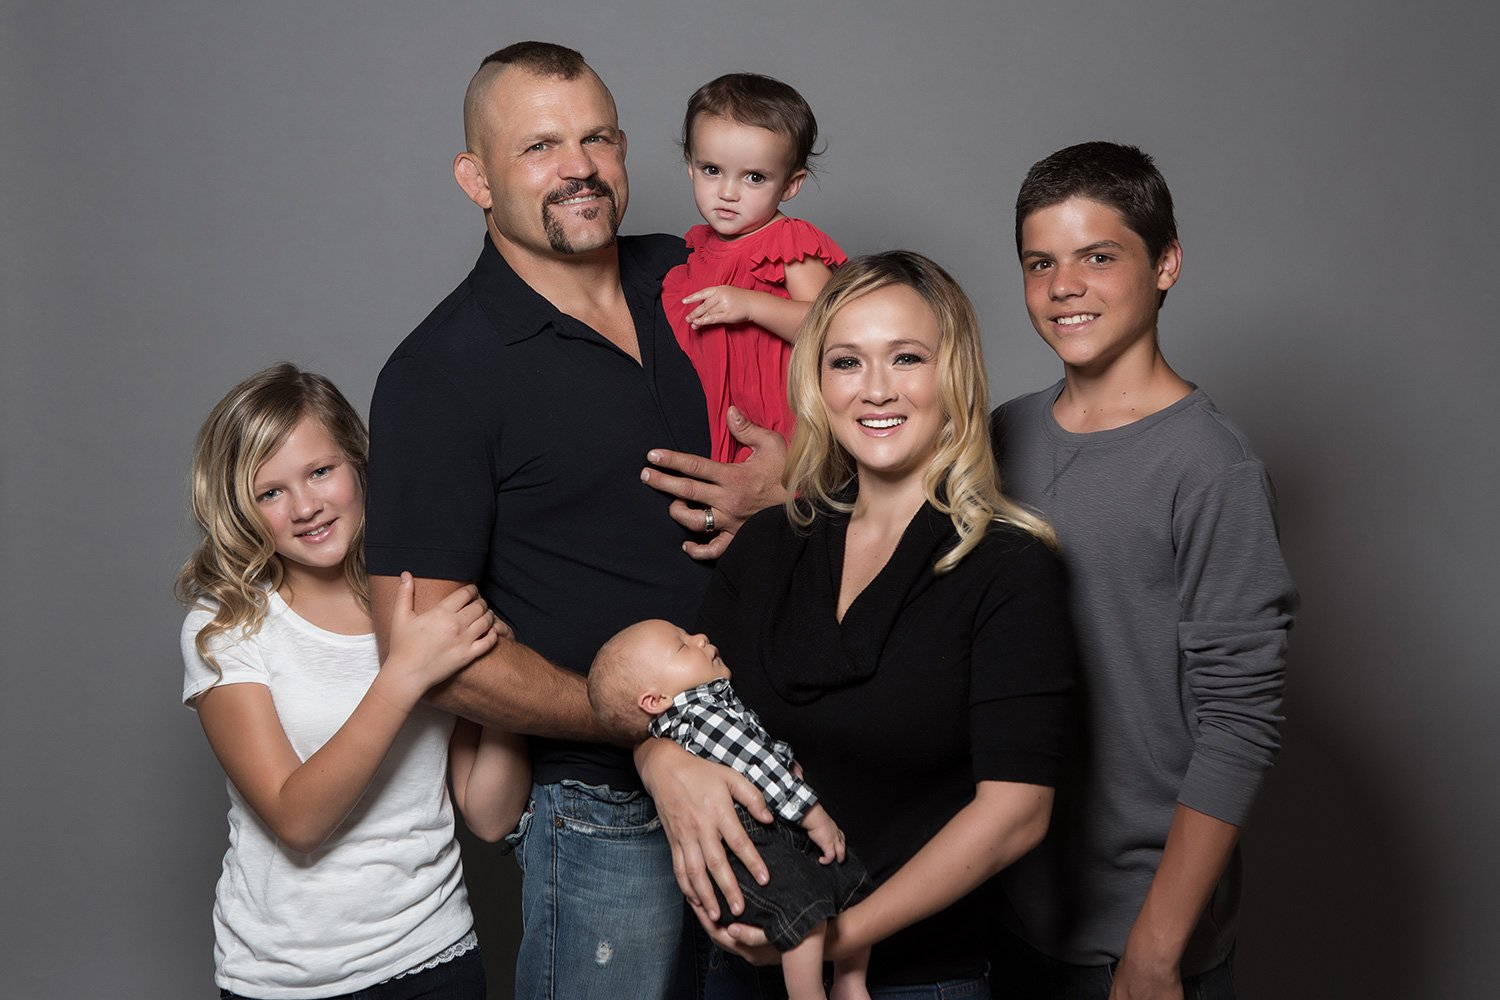 chuck-liddell-family-photographer.jpg